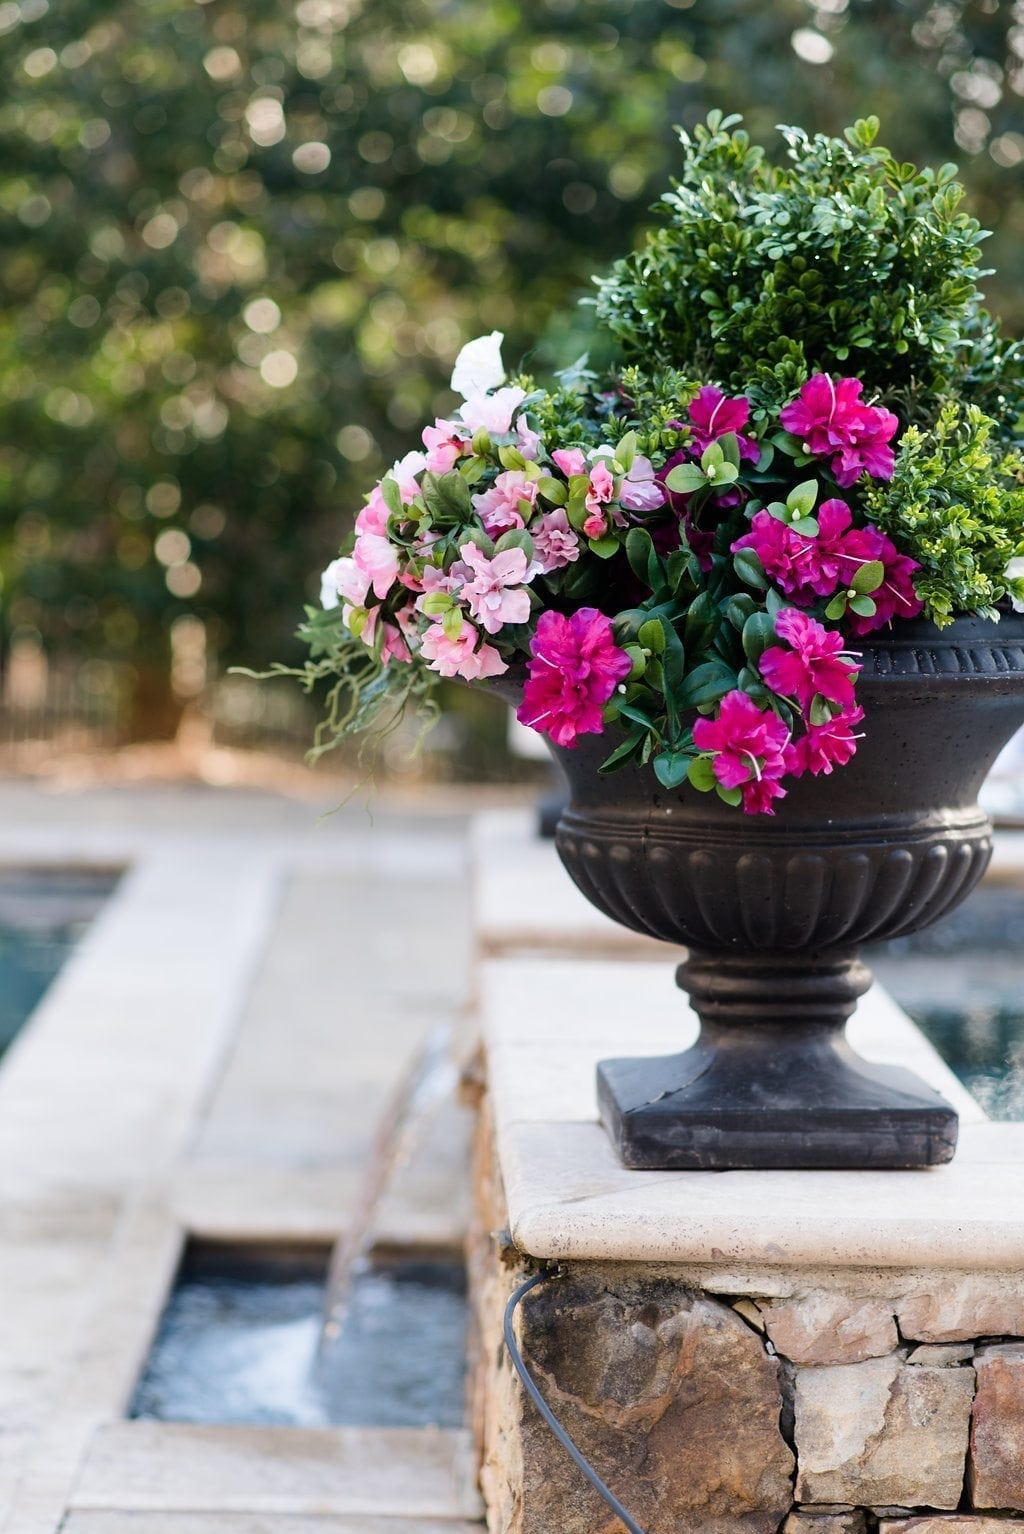 Silk Petunia plans in pool garden container with plastic boxwood.